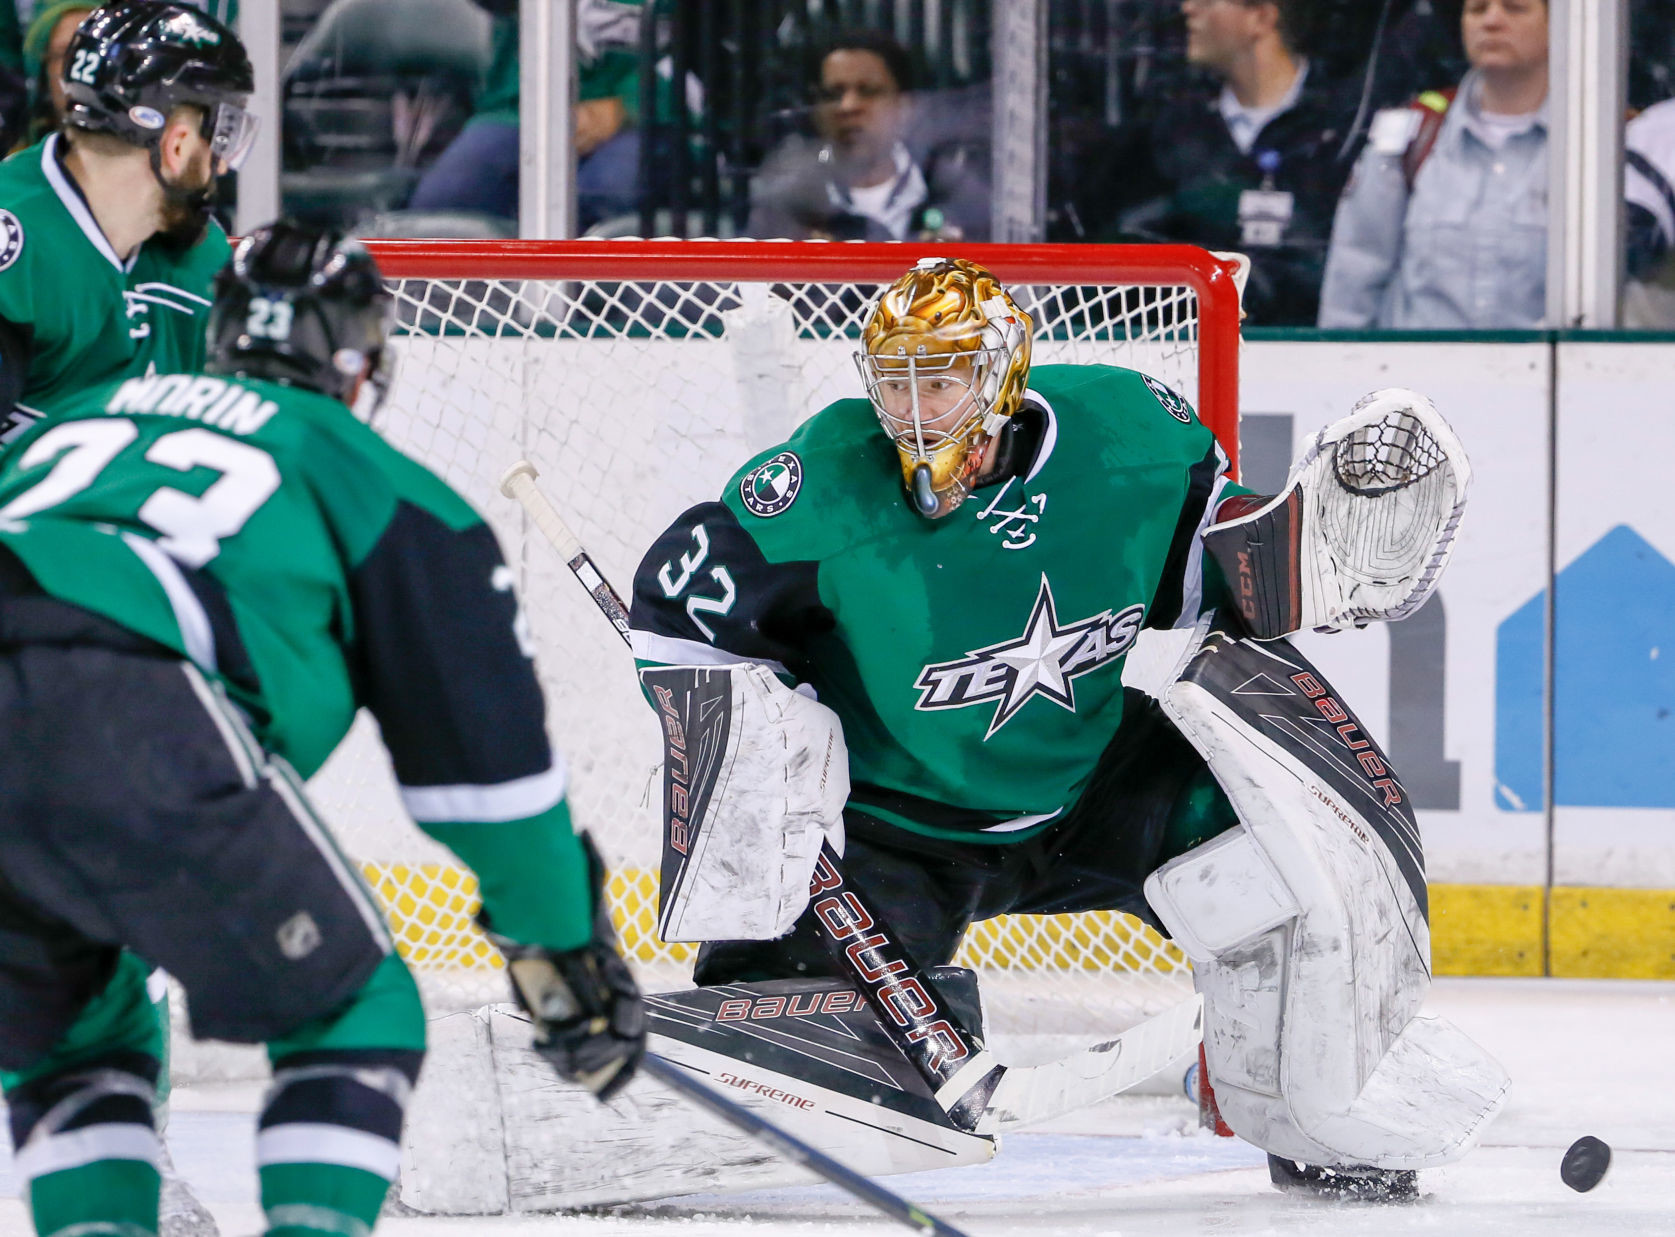 Justin Peters earned his first win with the Stars Saturday night against the San Antonio Rampage.